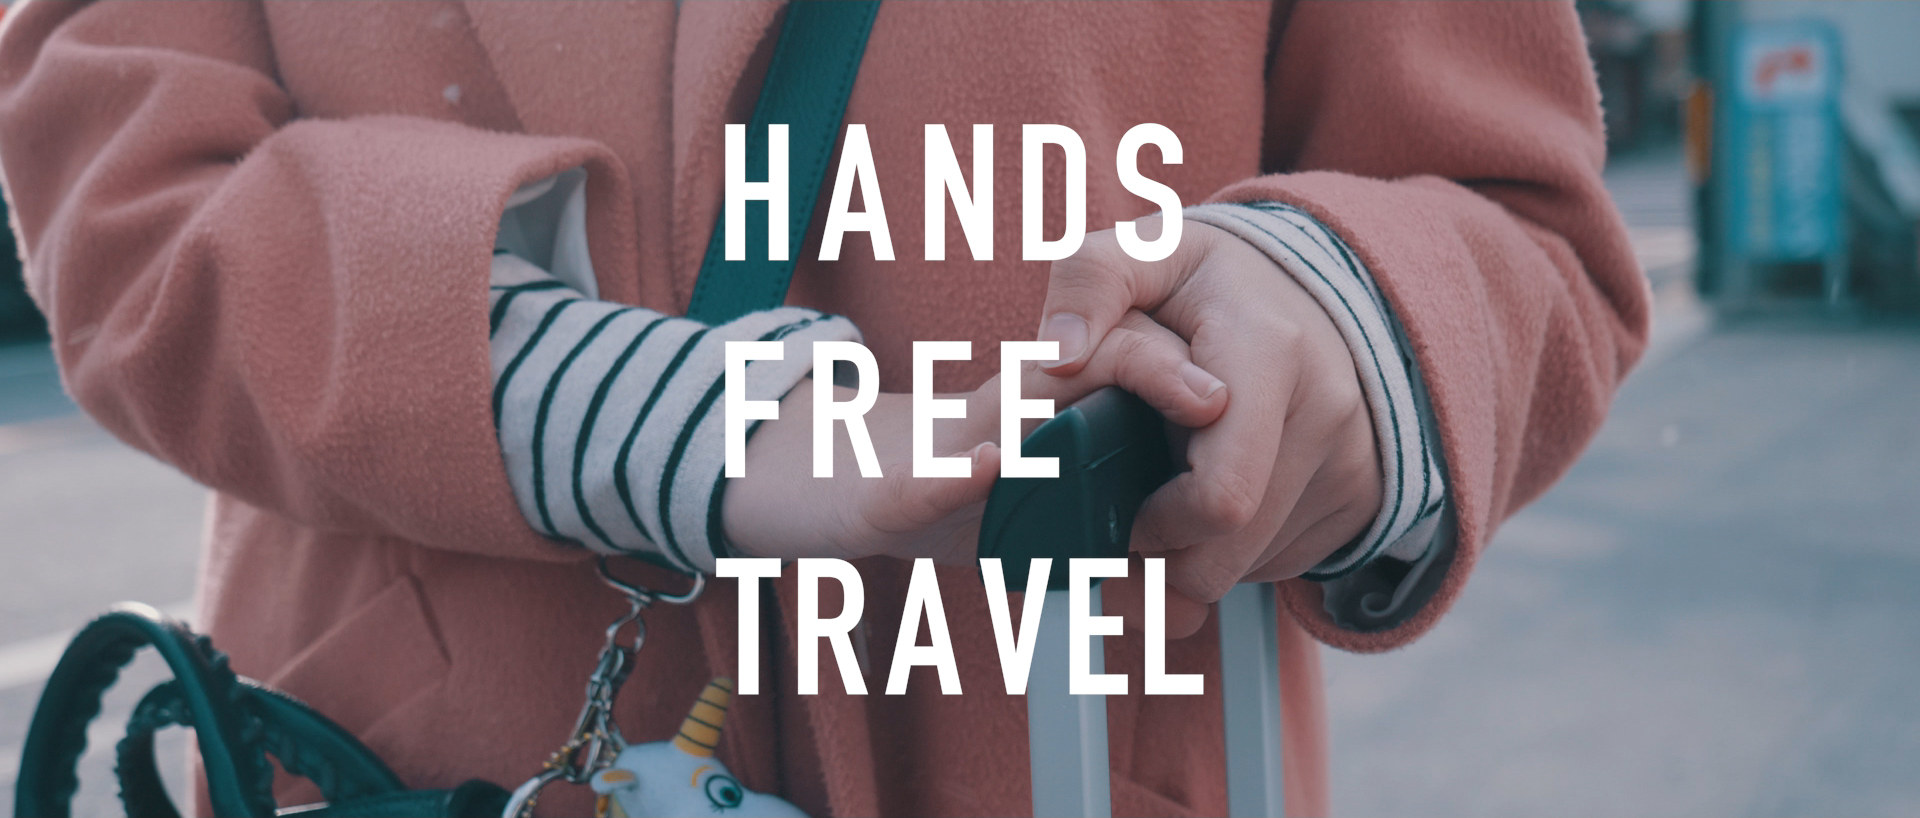 HANDS FREE TRAVEL02